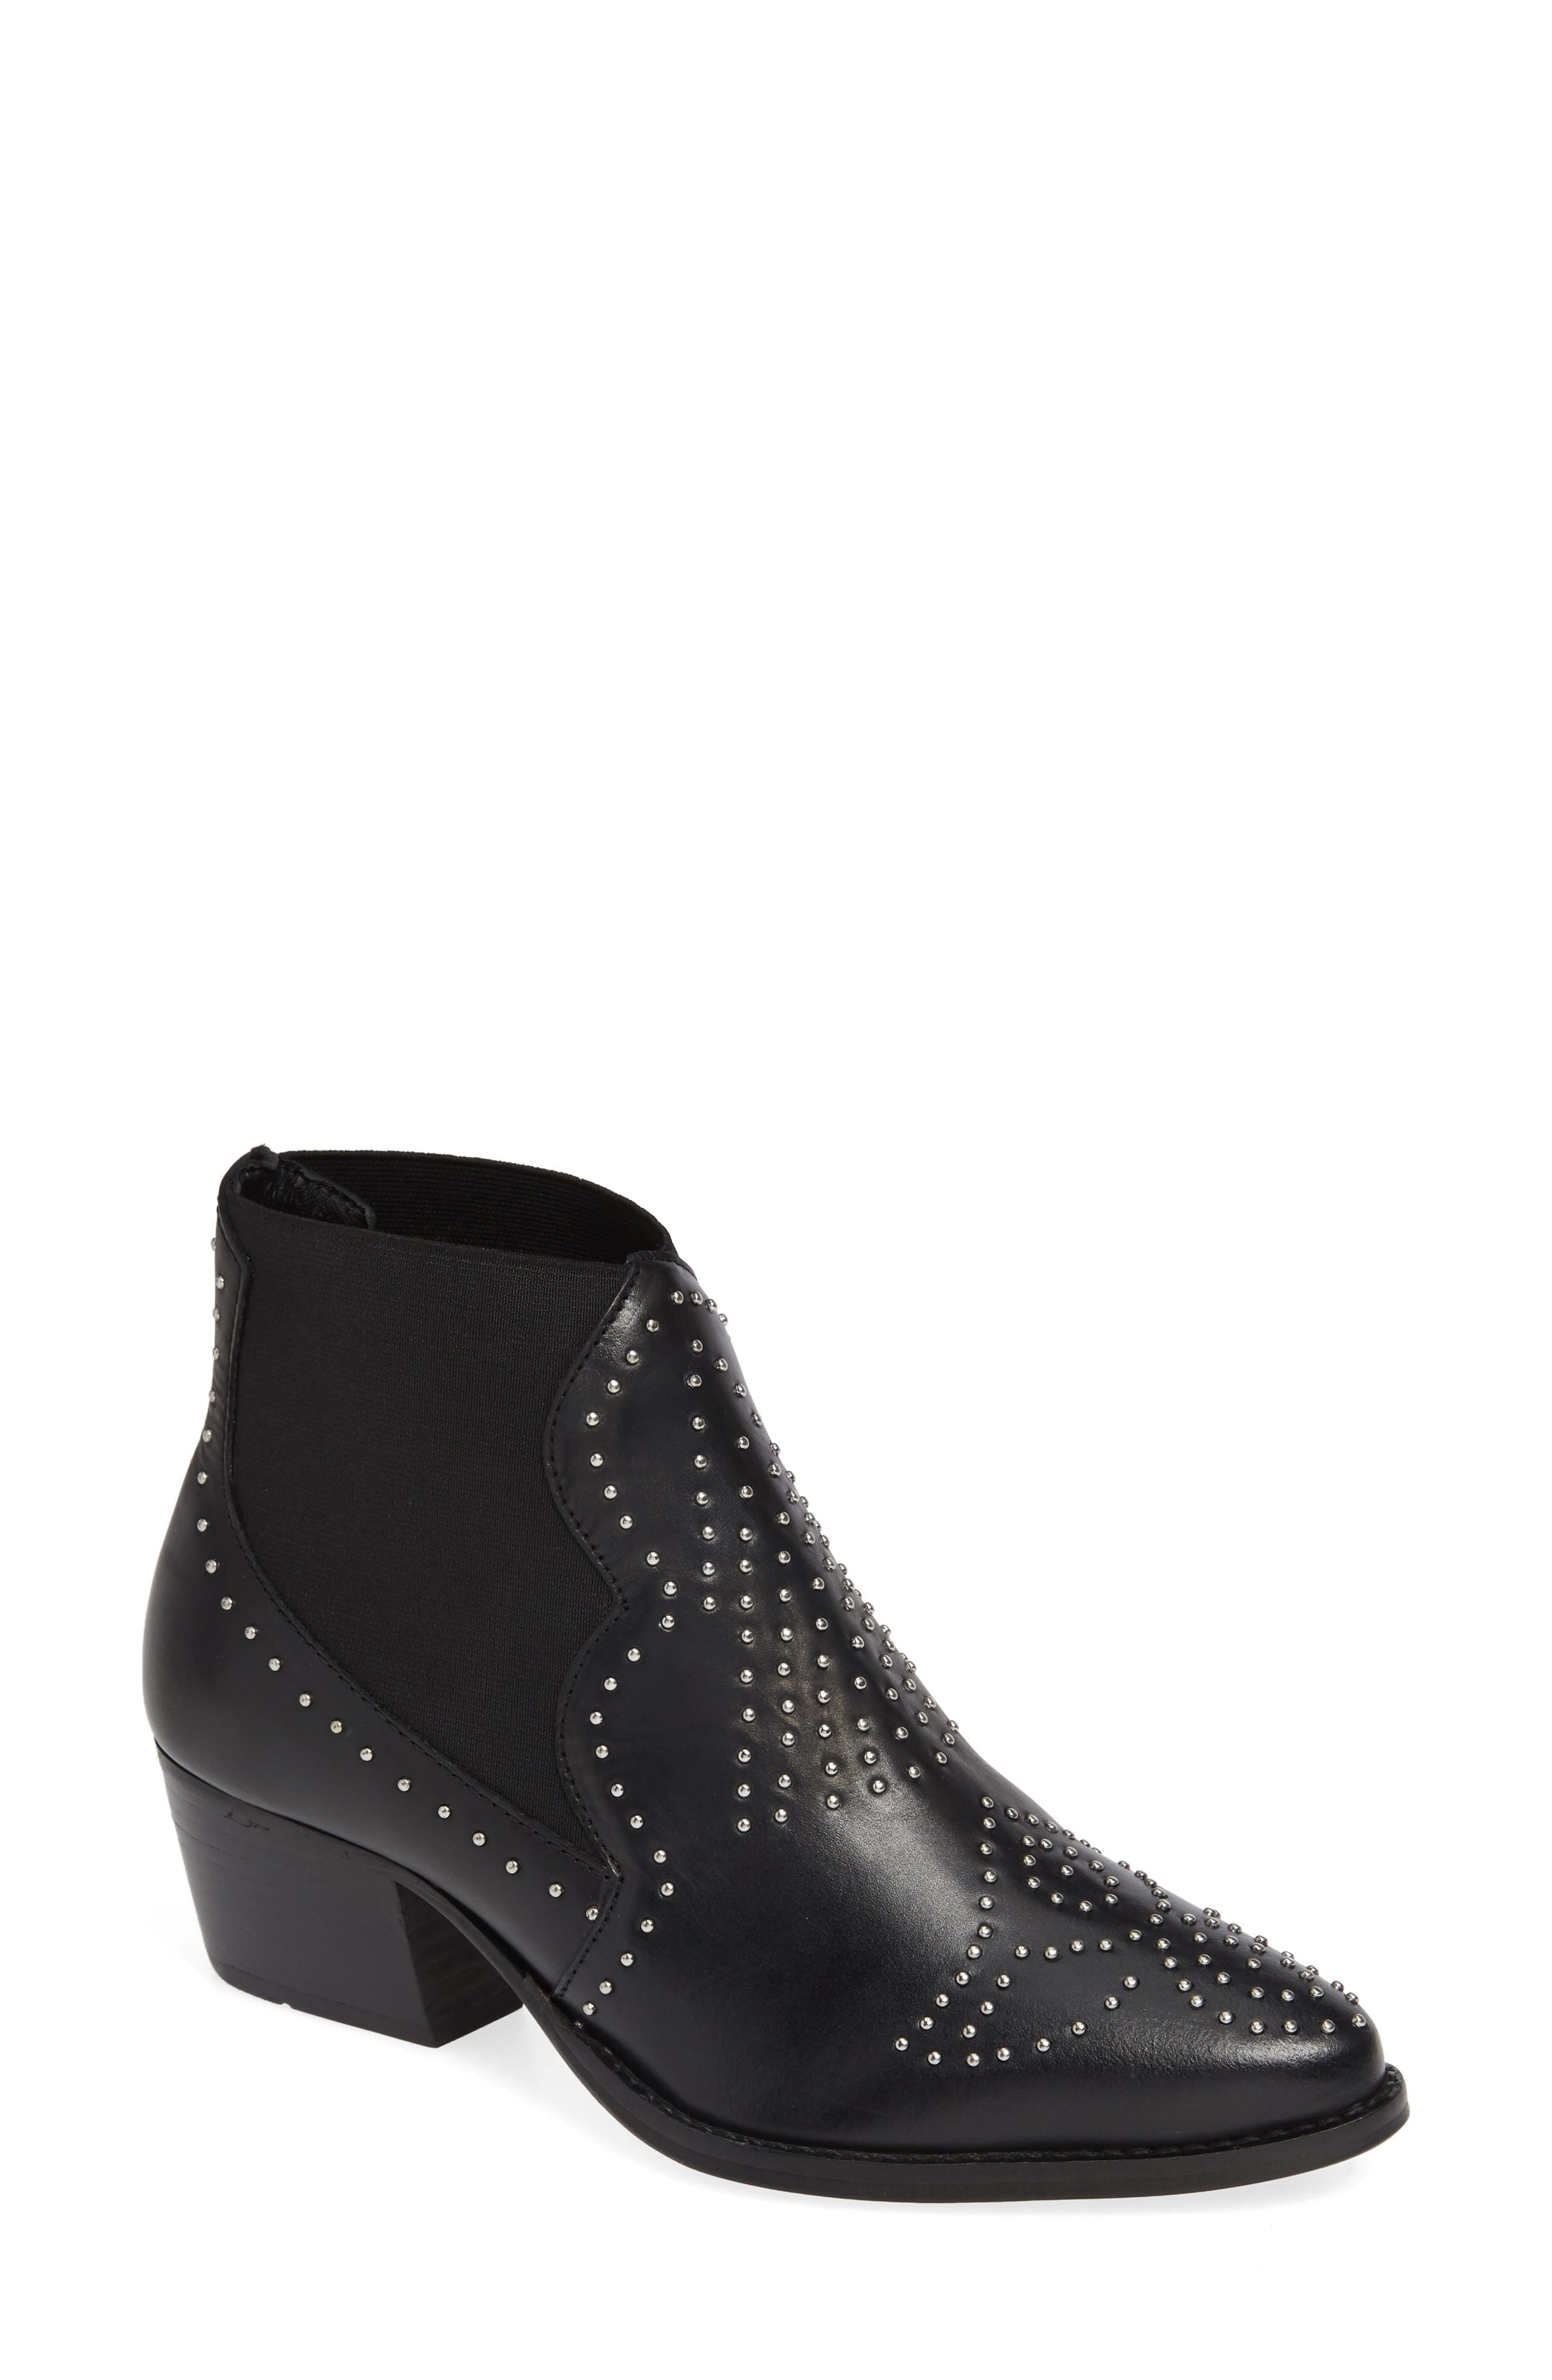 Charles By Charles David Zach Studded Bootie- Black